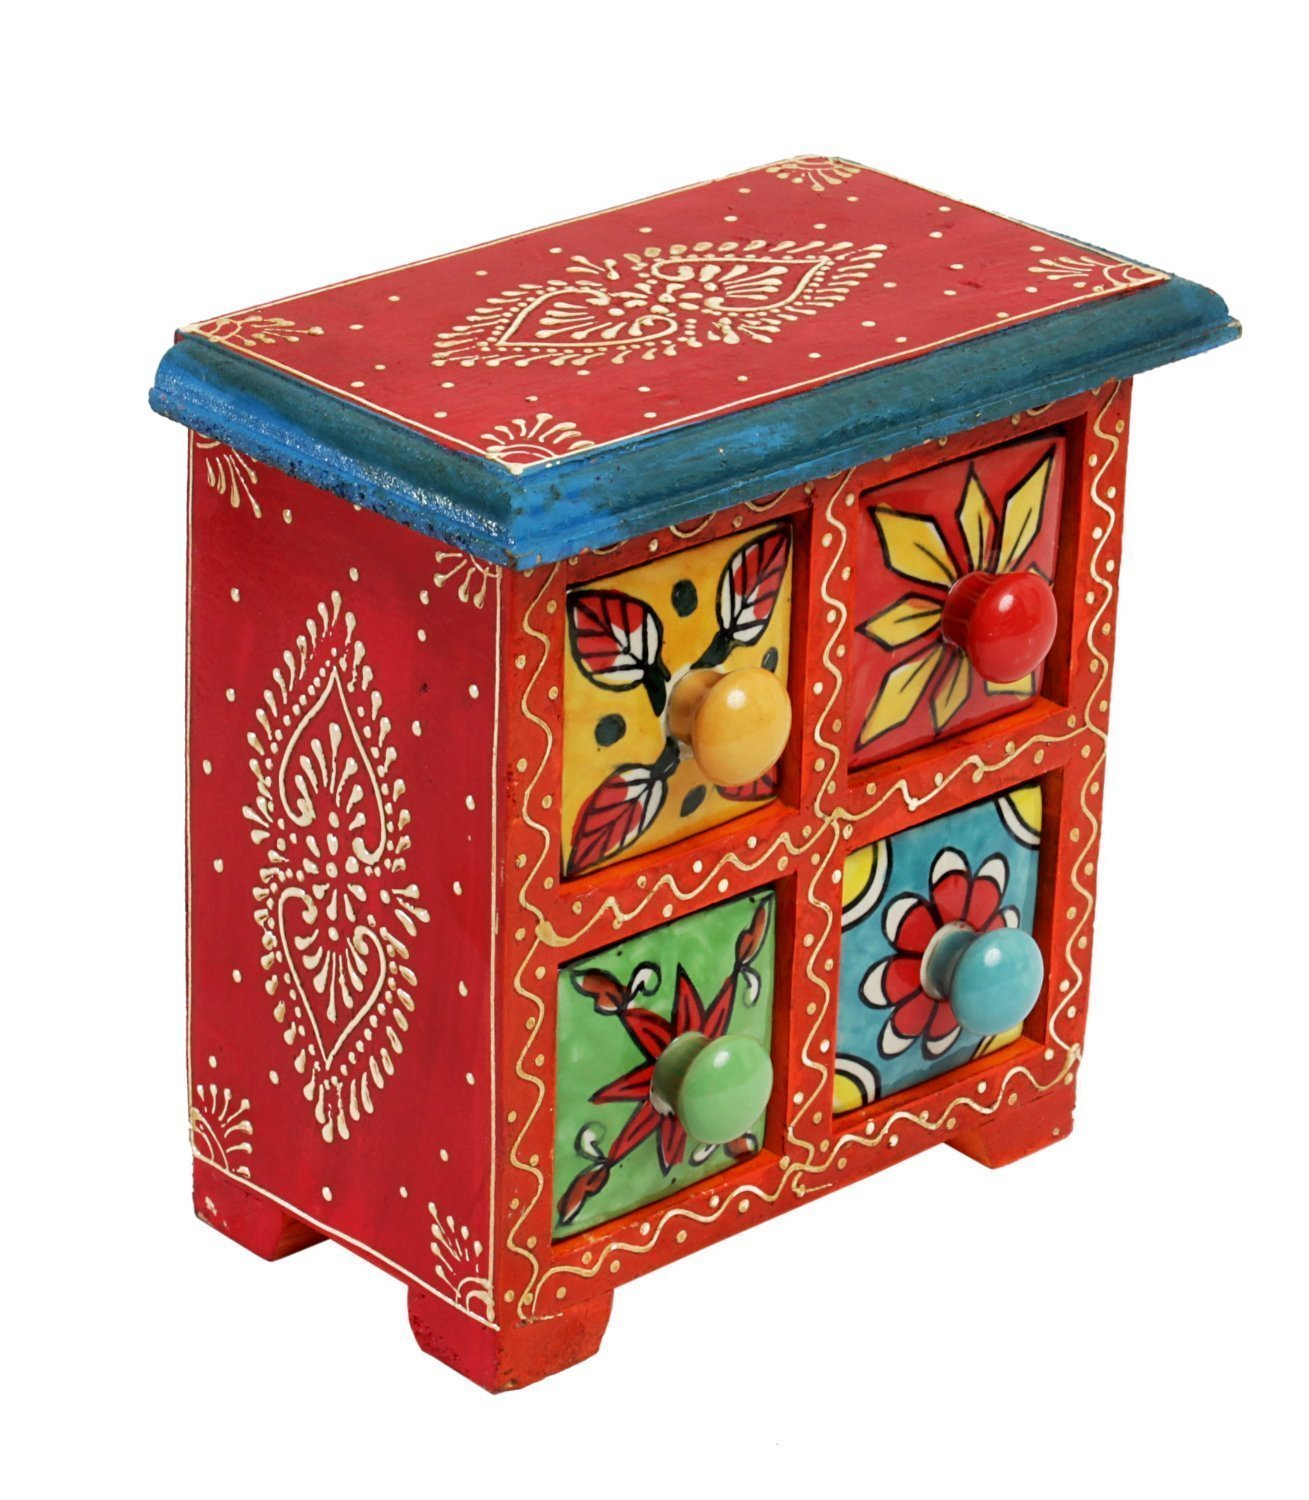 Ethnic Chest of 4 Drawers with Embossed Hand Painted Floral Patterns Multi-purpose Holder